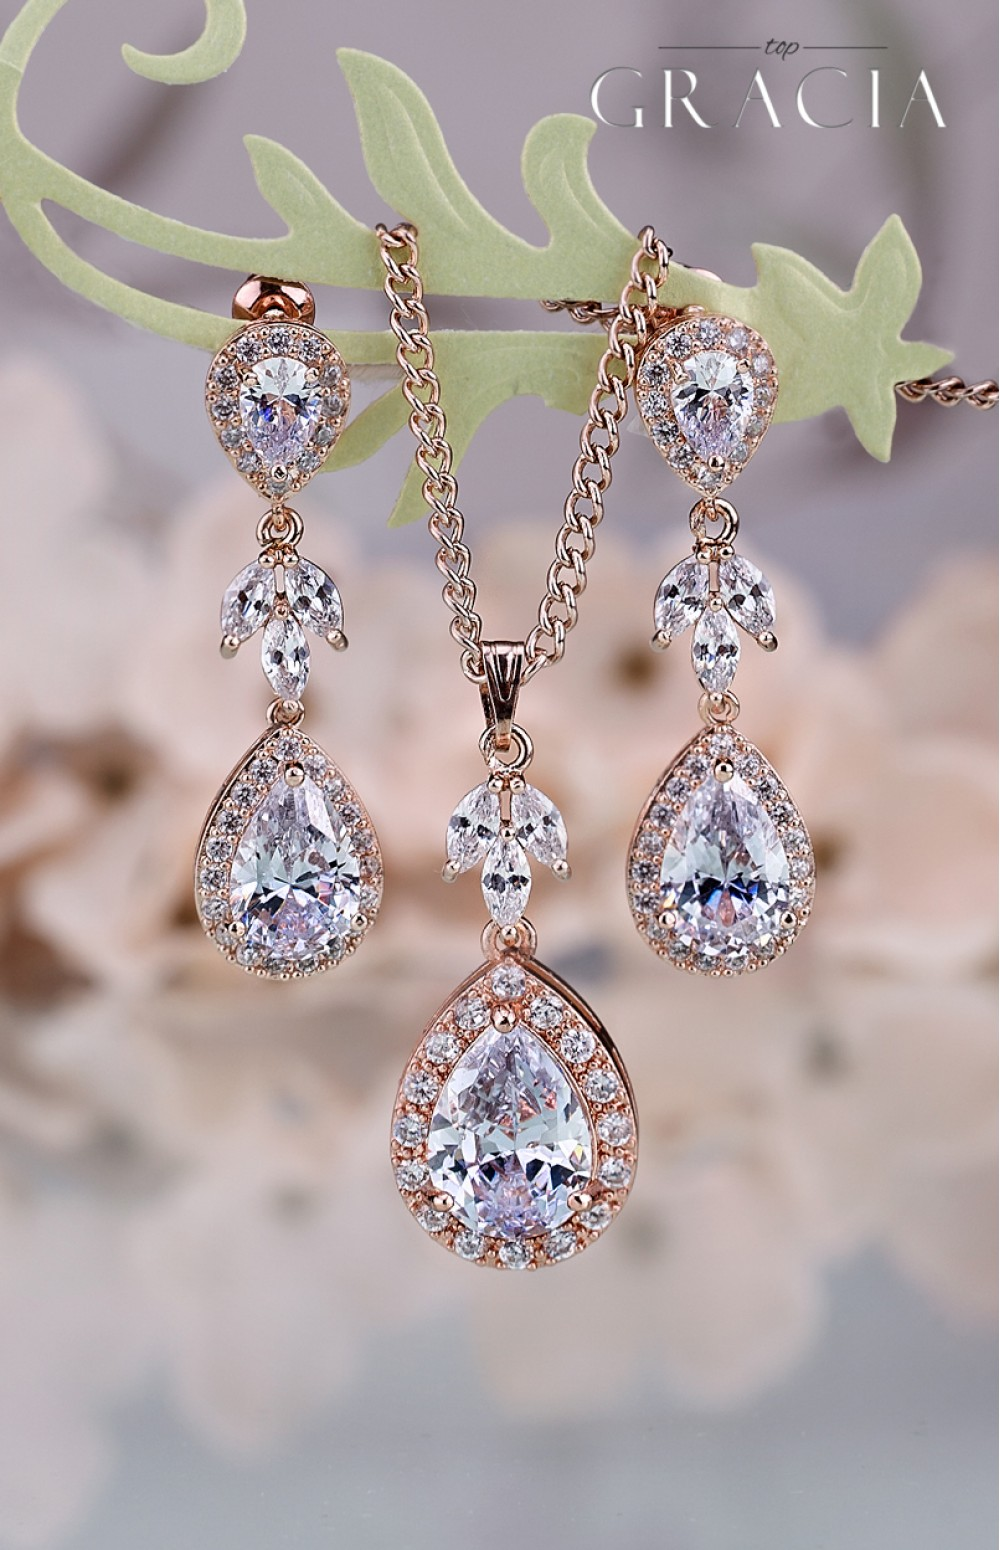 99424afcee4b2 MINTA Cubic Zirconia Rose Gold Crystal Teardrop Bridal Earrings Necklace  Wedding Jewelry Bridesmaid Gift